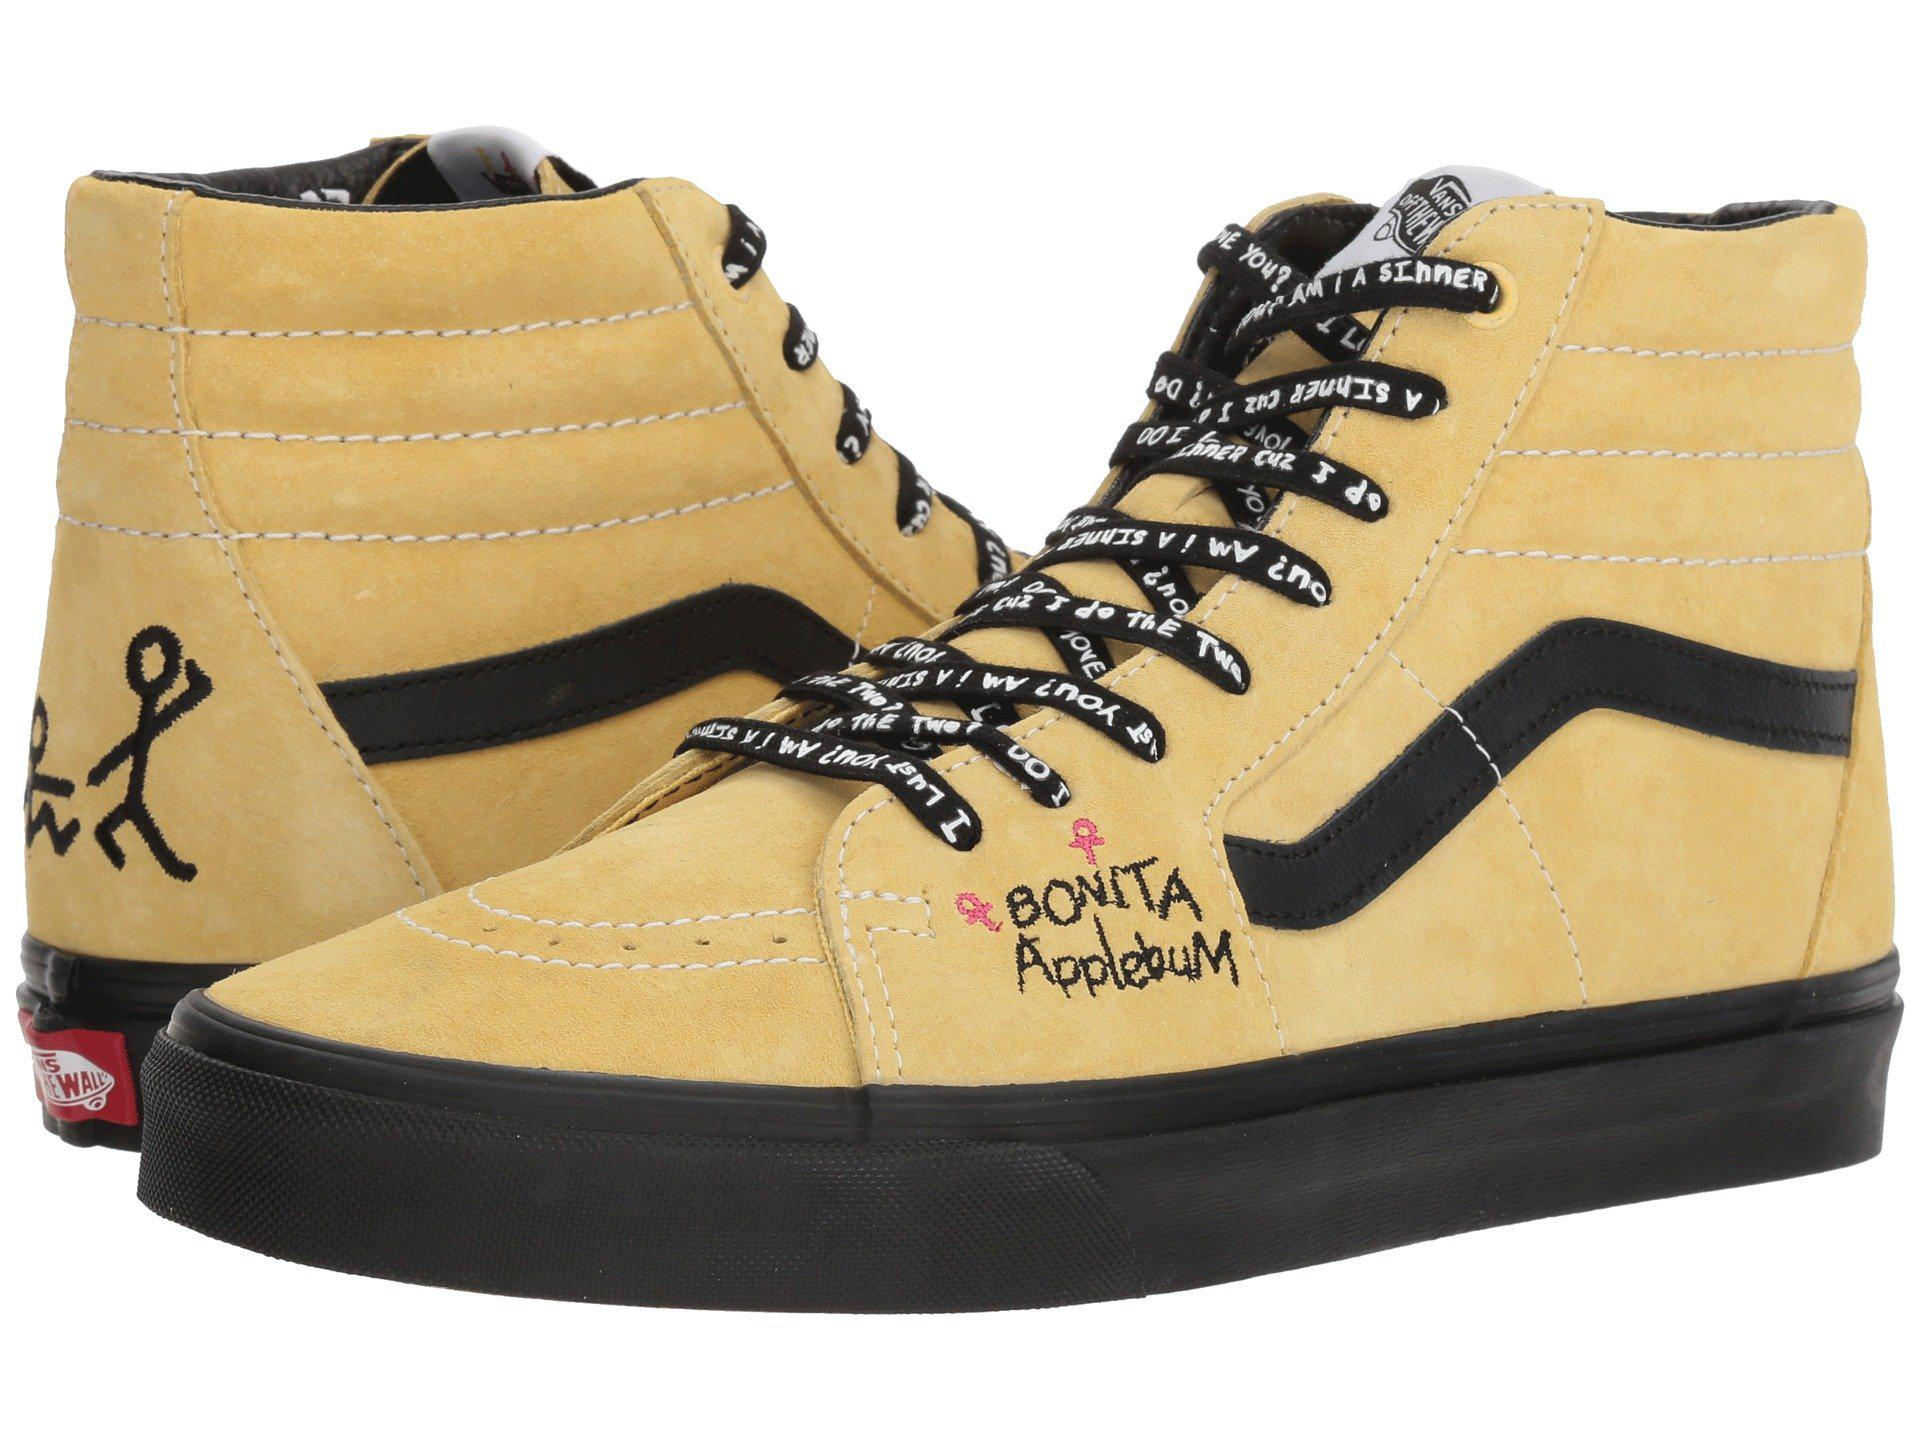 Lyst - Vans Sk8-hi X A Tribe Called Quest Collab. (mellow Yellow ... 86ca8125b